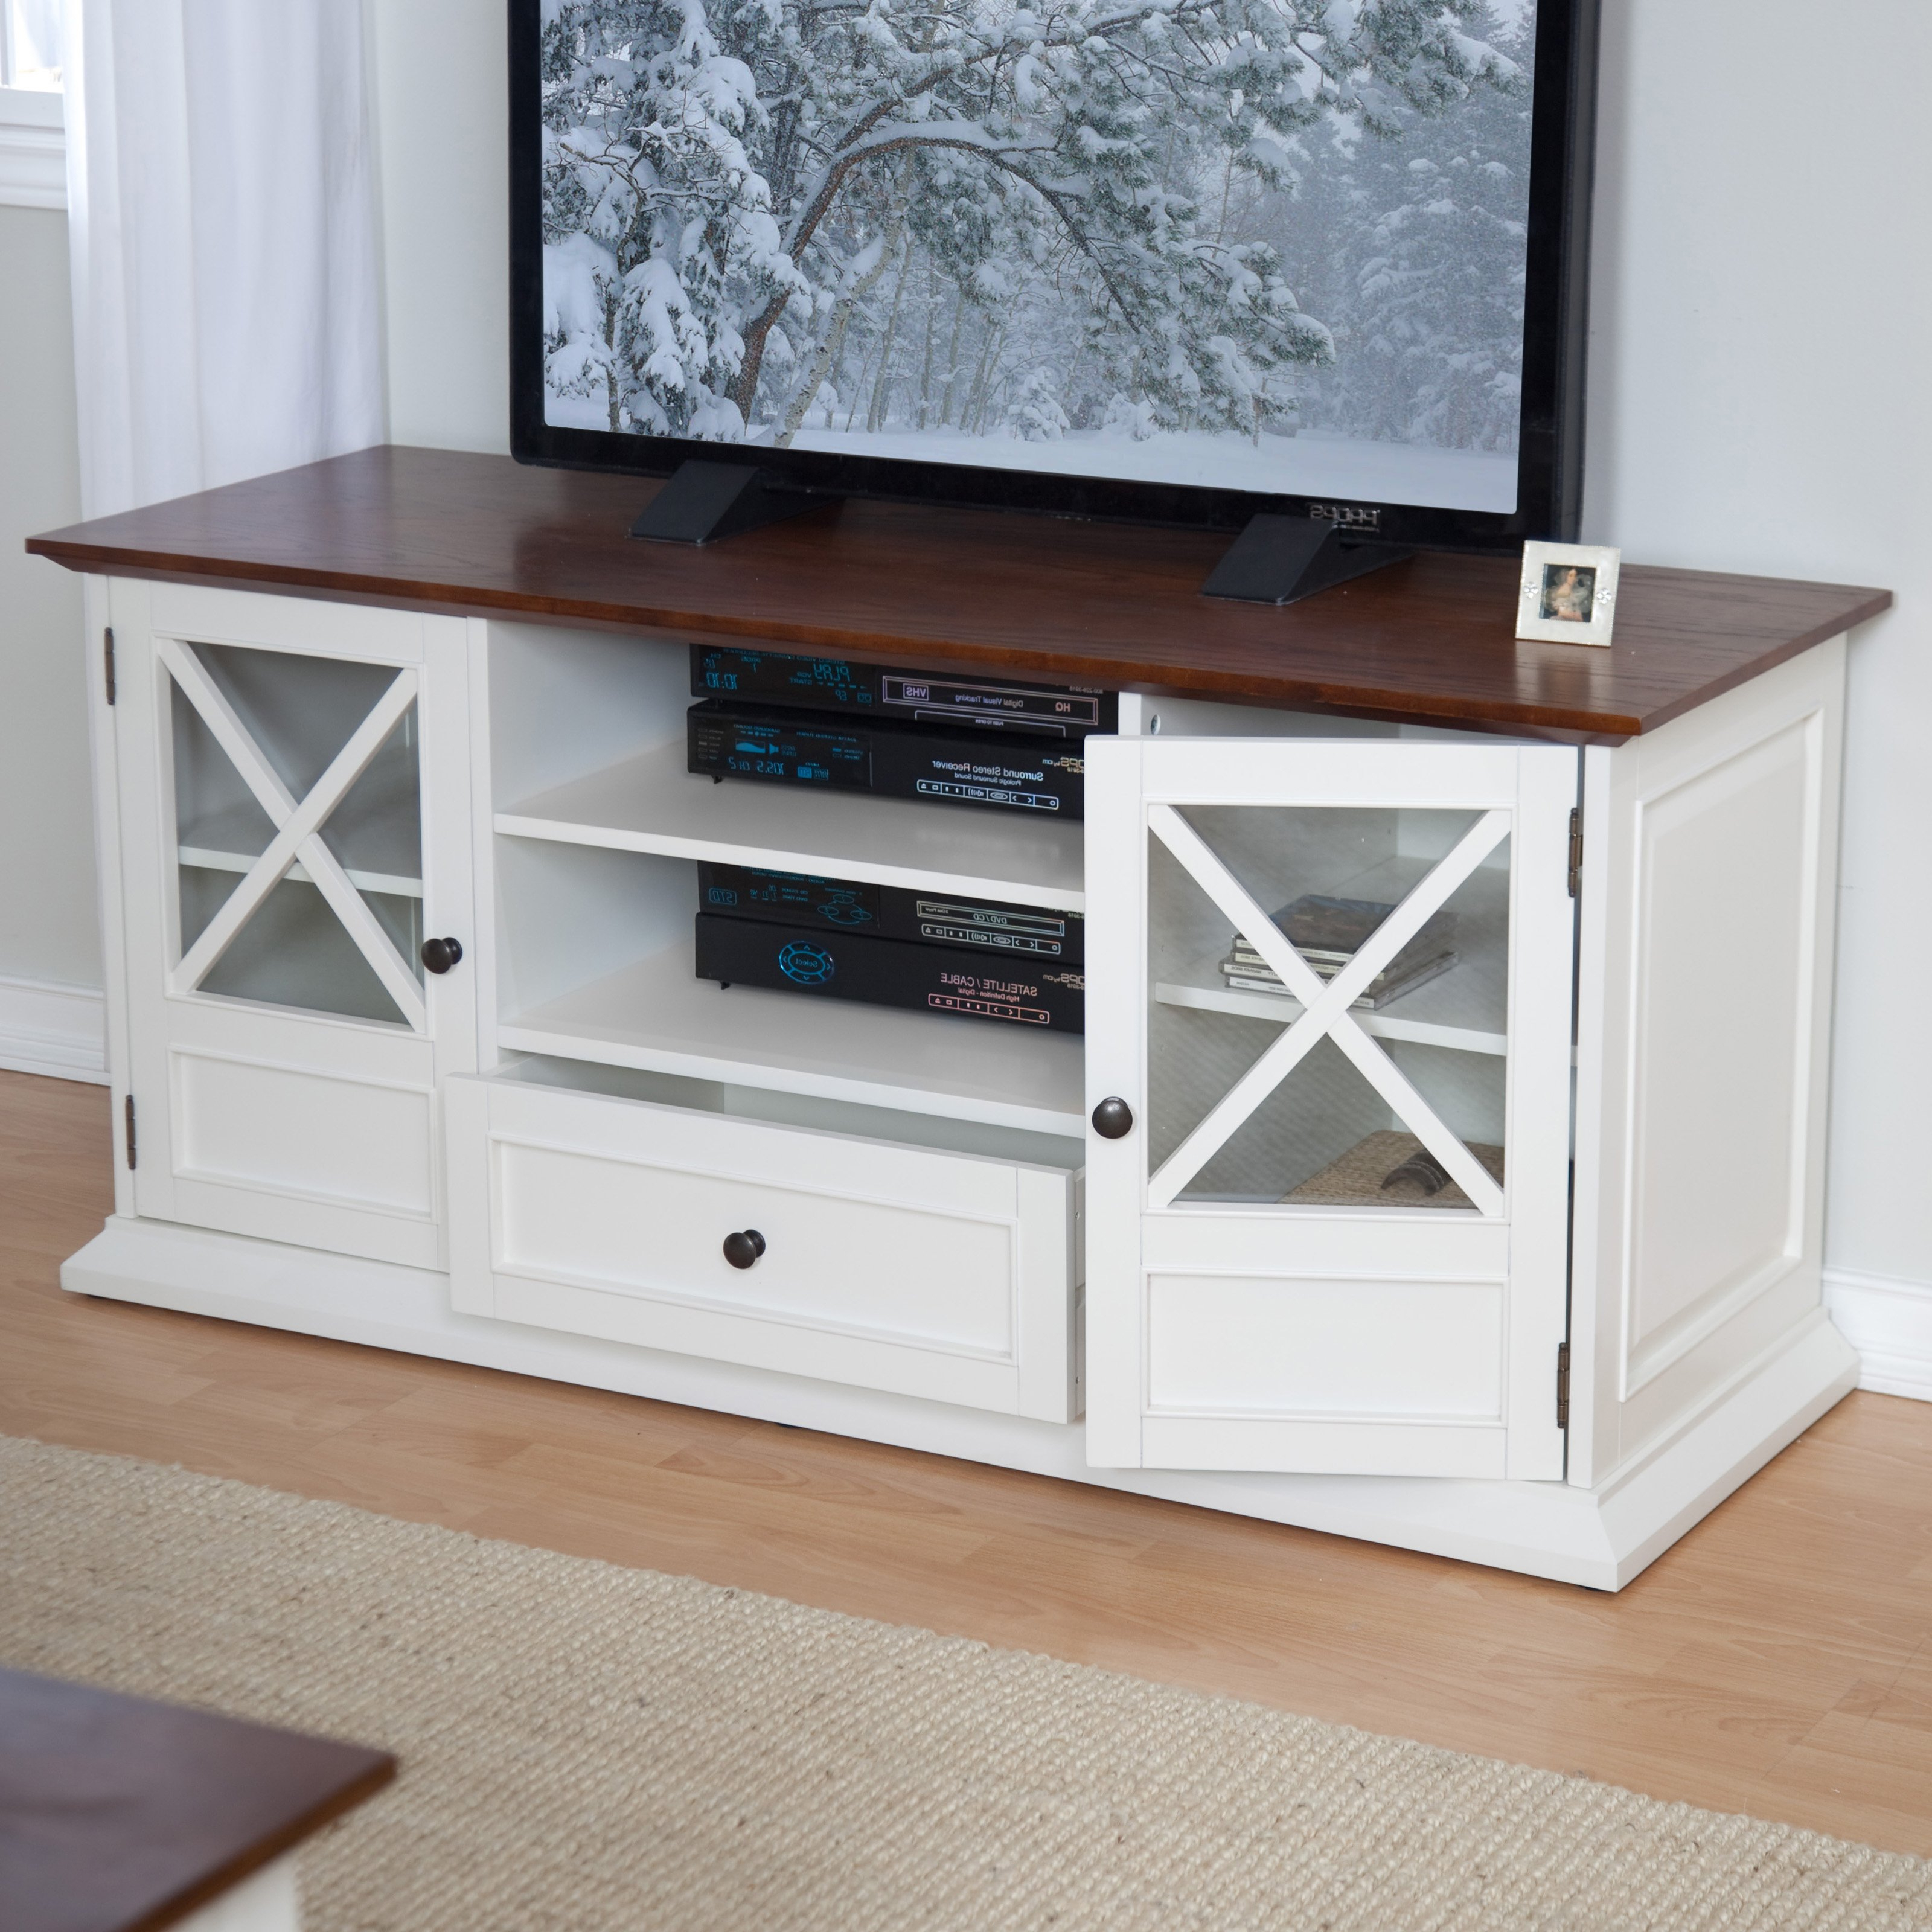 Most Popular Oak Tv Cabinets For Flat Screens Regarding Tv Stands And Entertainment Centers : Flat Screen Tv Stands Oak (View 20 of 20)